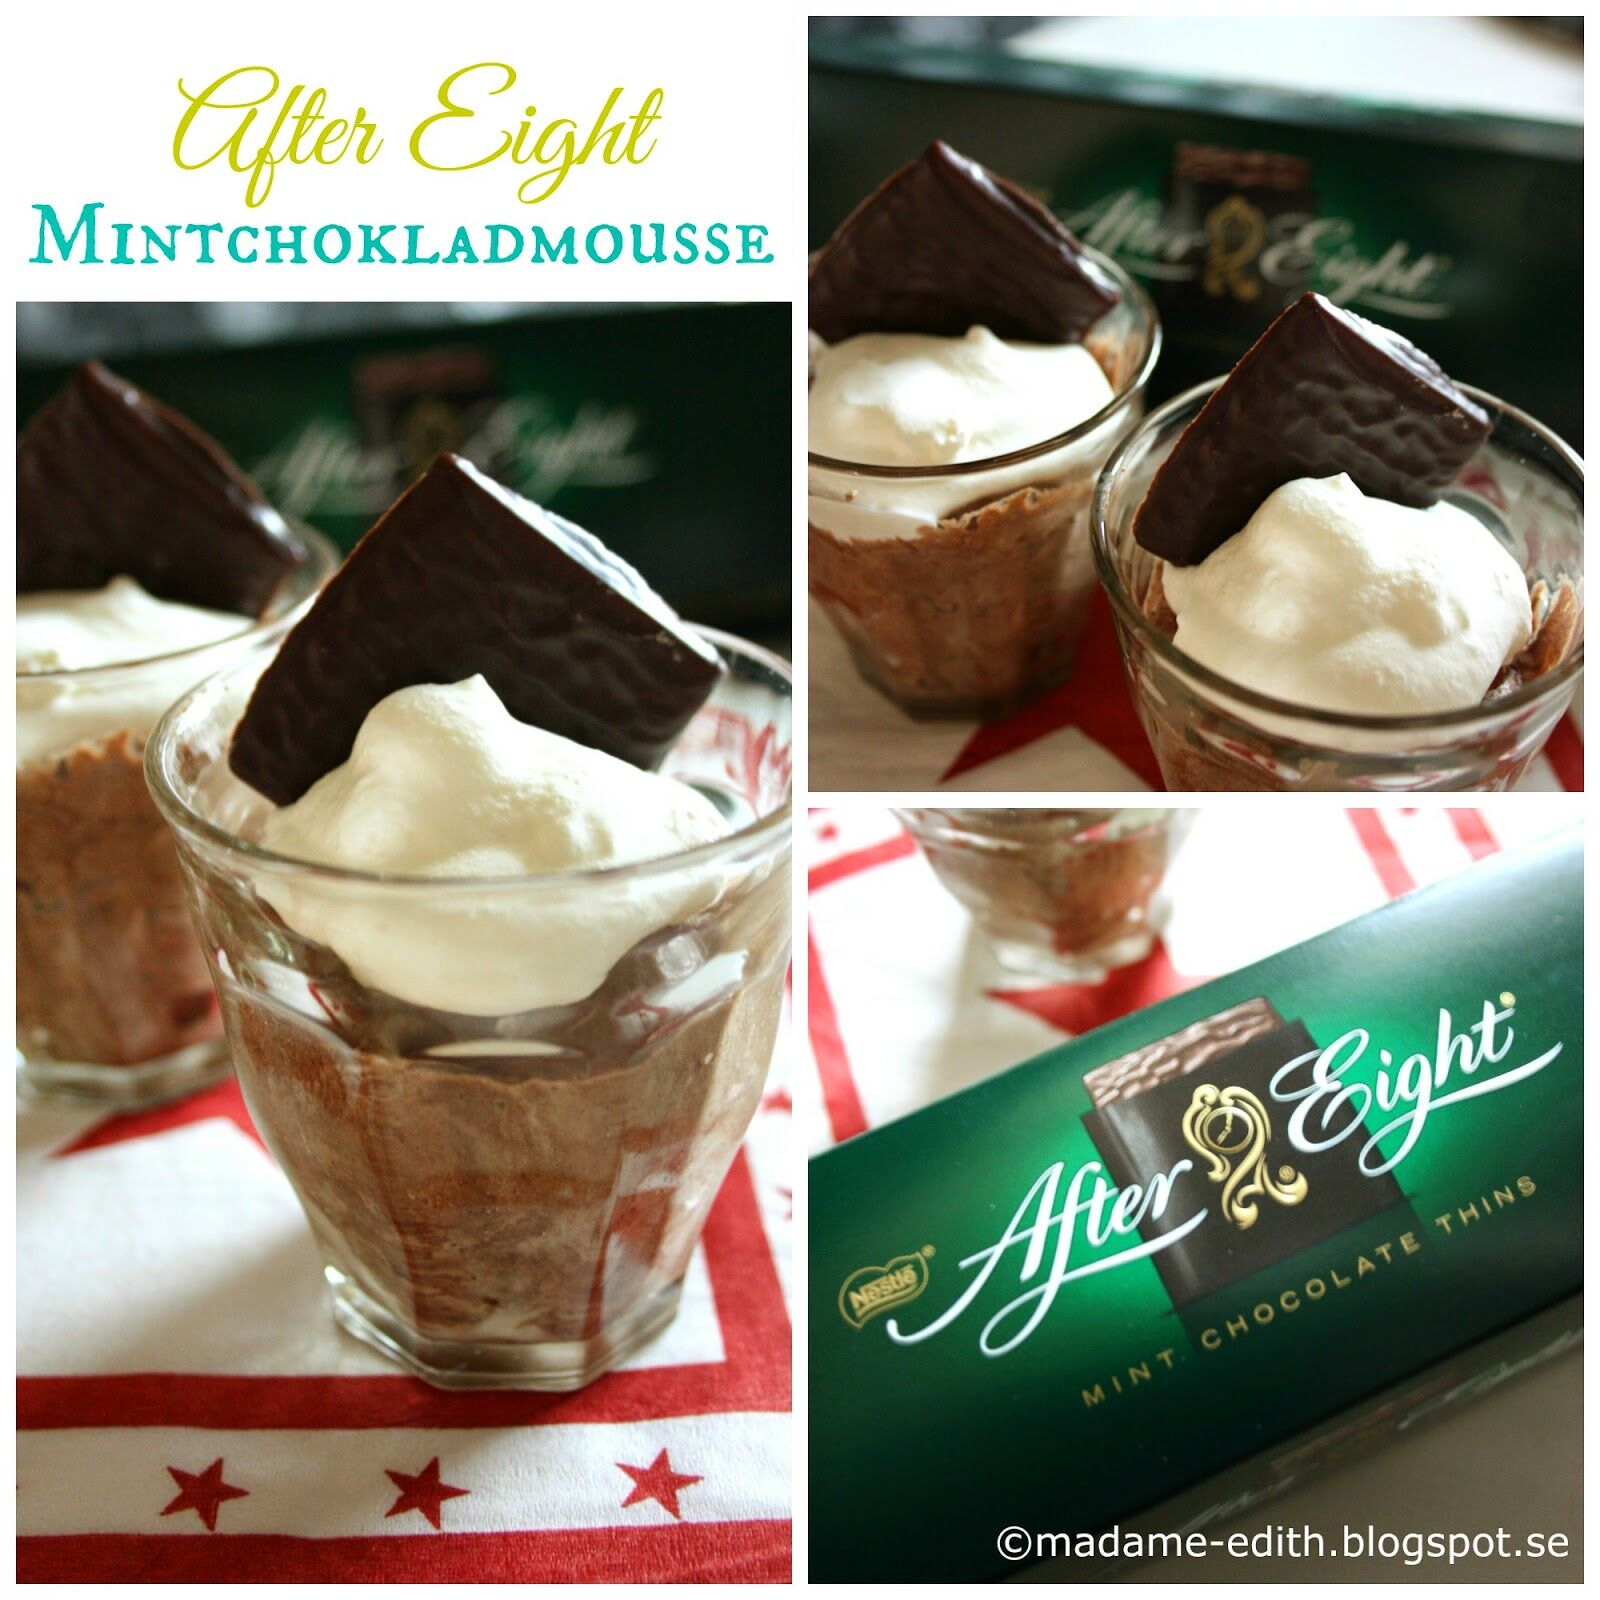 after eight mousse (5)